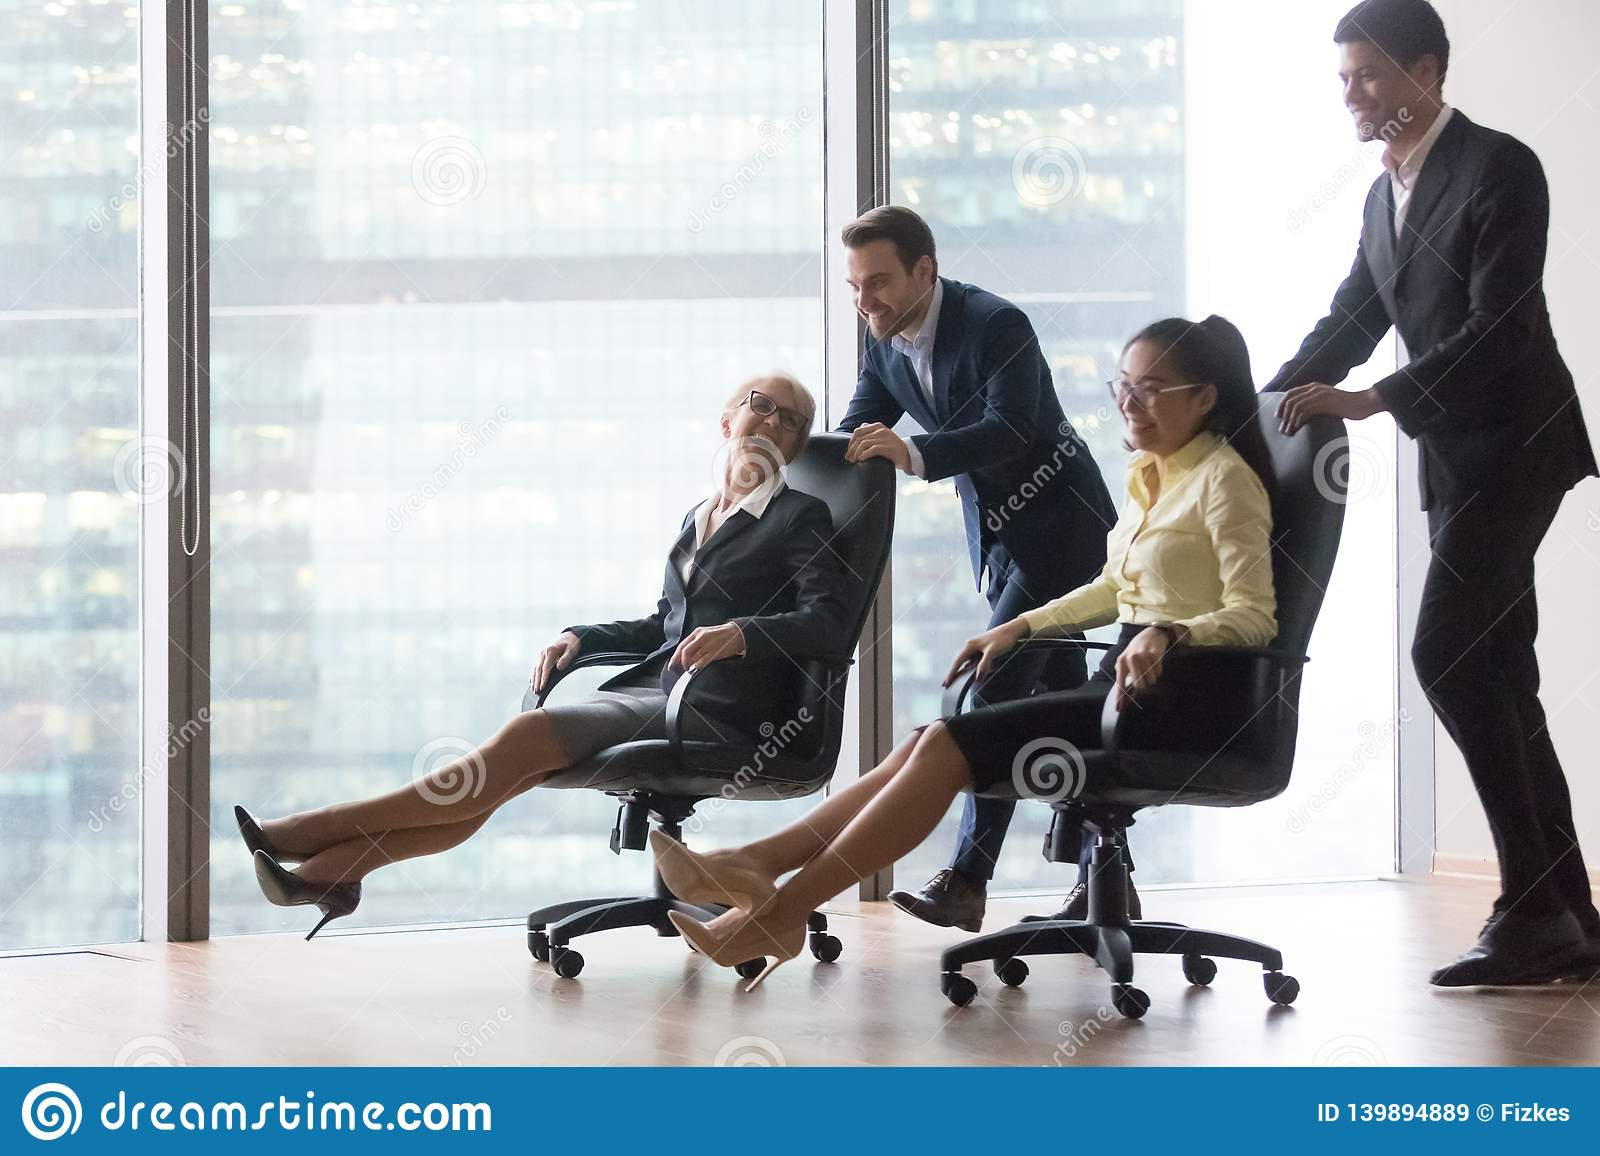 Happy diverse employees having fun riding on chairs in office